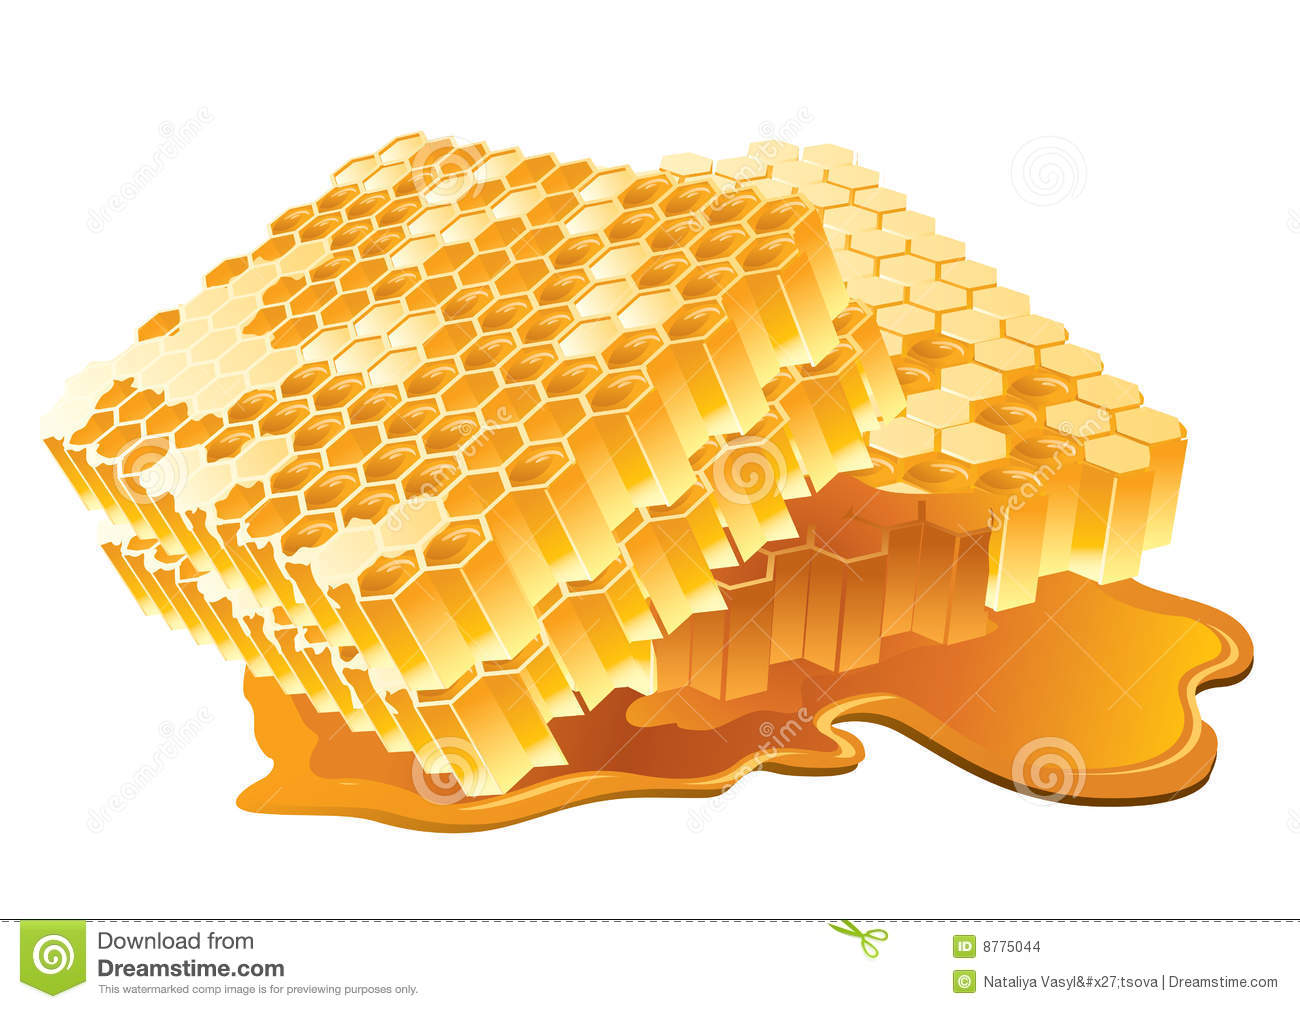 Honeycomb clipart #6, Download drawings